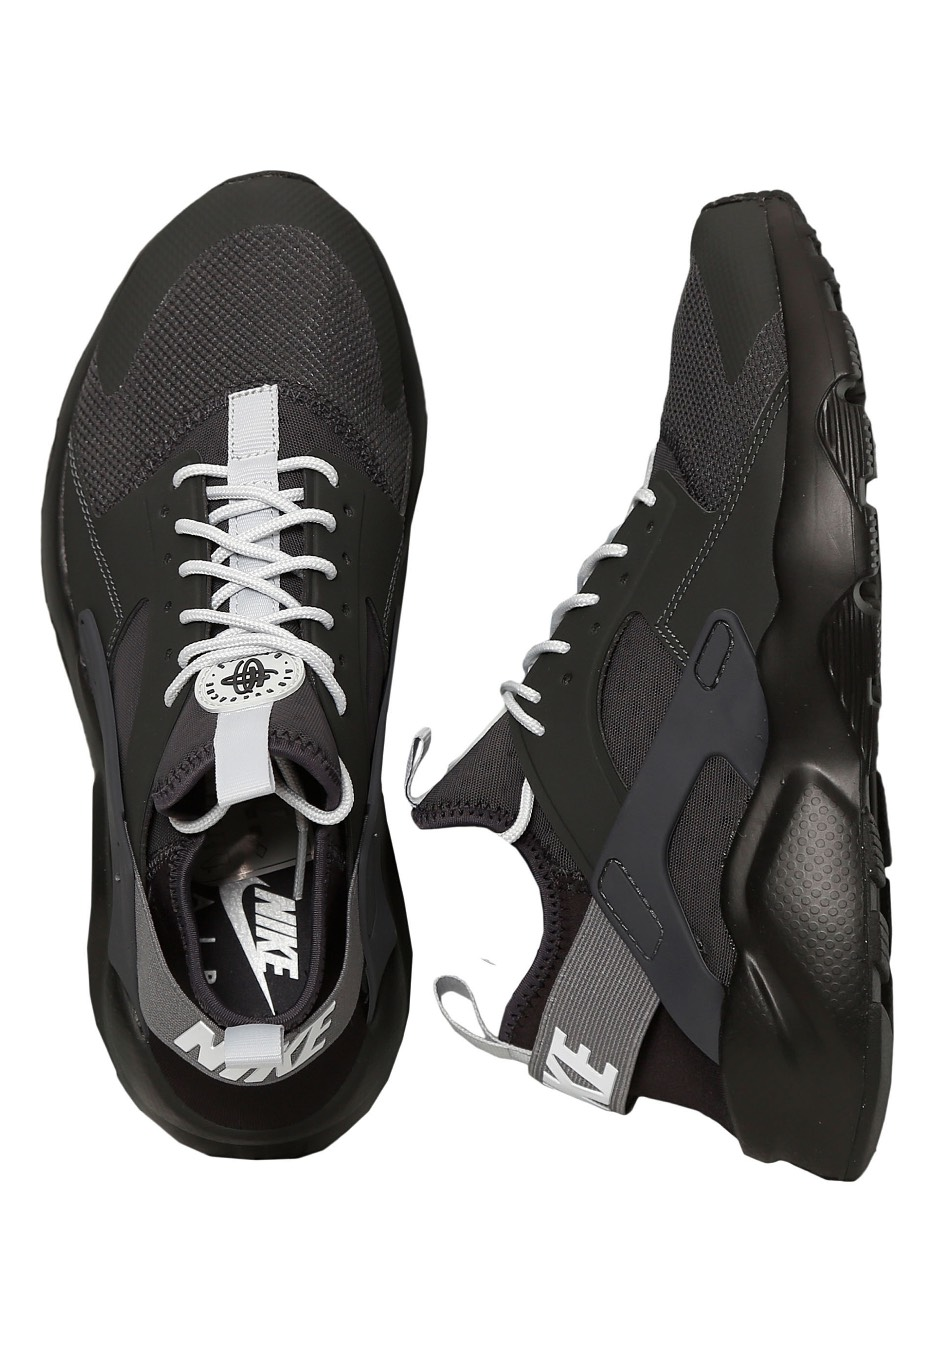 Nike - Air Huarache Run Ultra Anthracite Black Black White - Shoes -  Impericon.com Worldwide 0a6769aa8